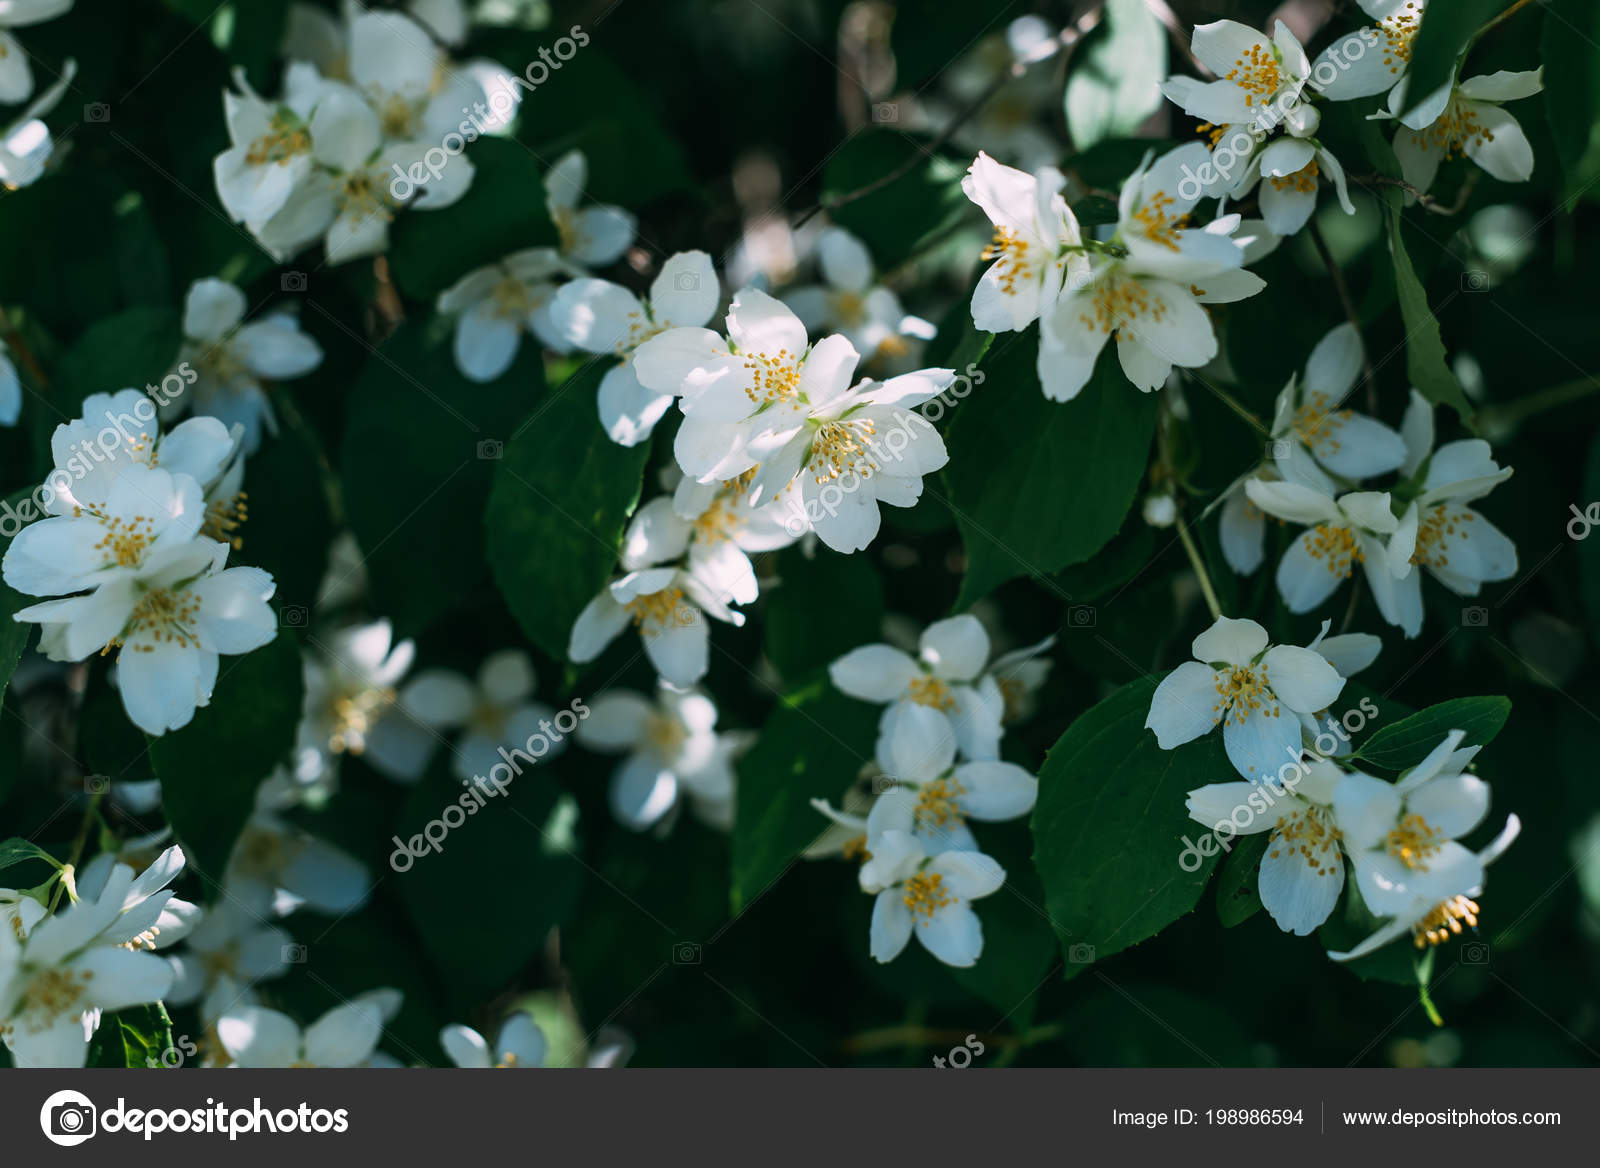 Close View White Jasmine Flowers Bush Stock Photo Katenovikova